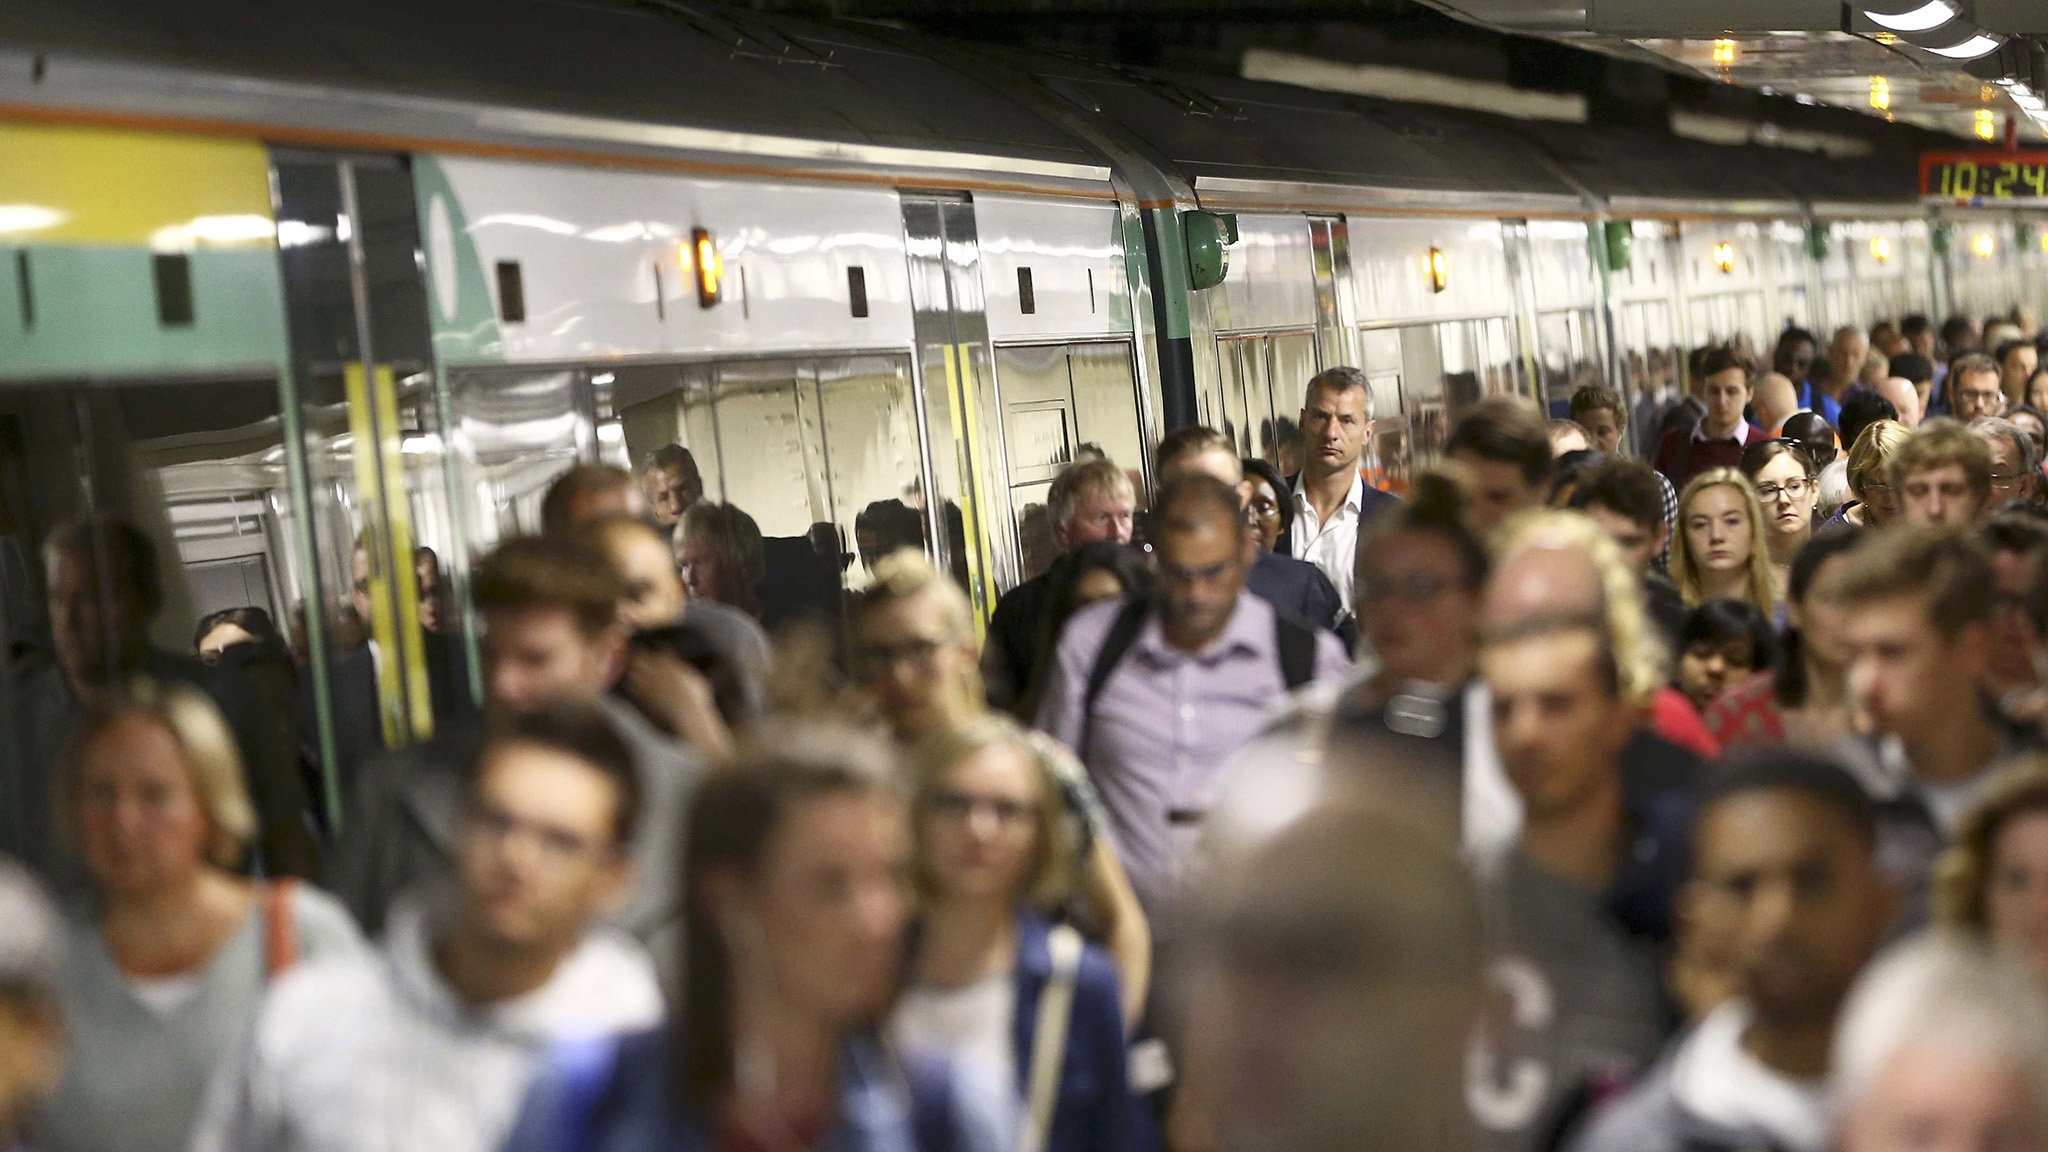 Passengers disembark a Southern train at Victoria Station in London, Britain August 8, 2016.